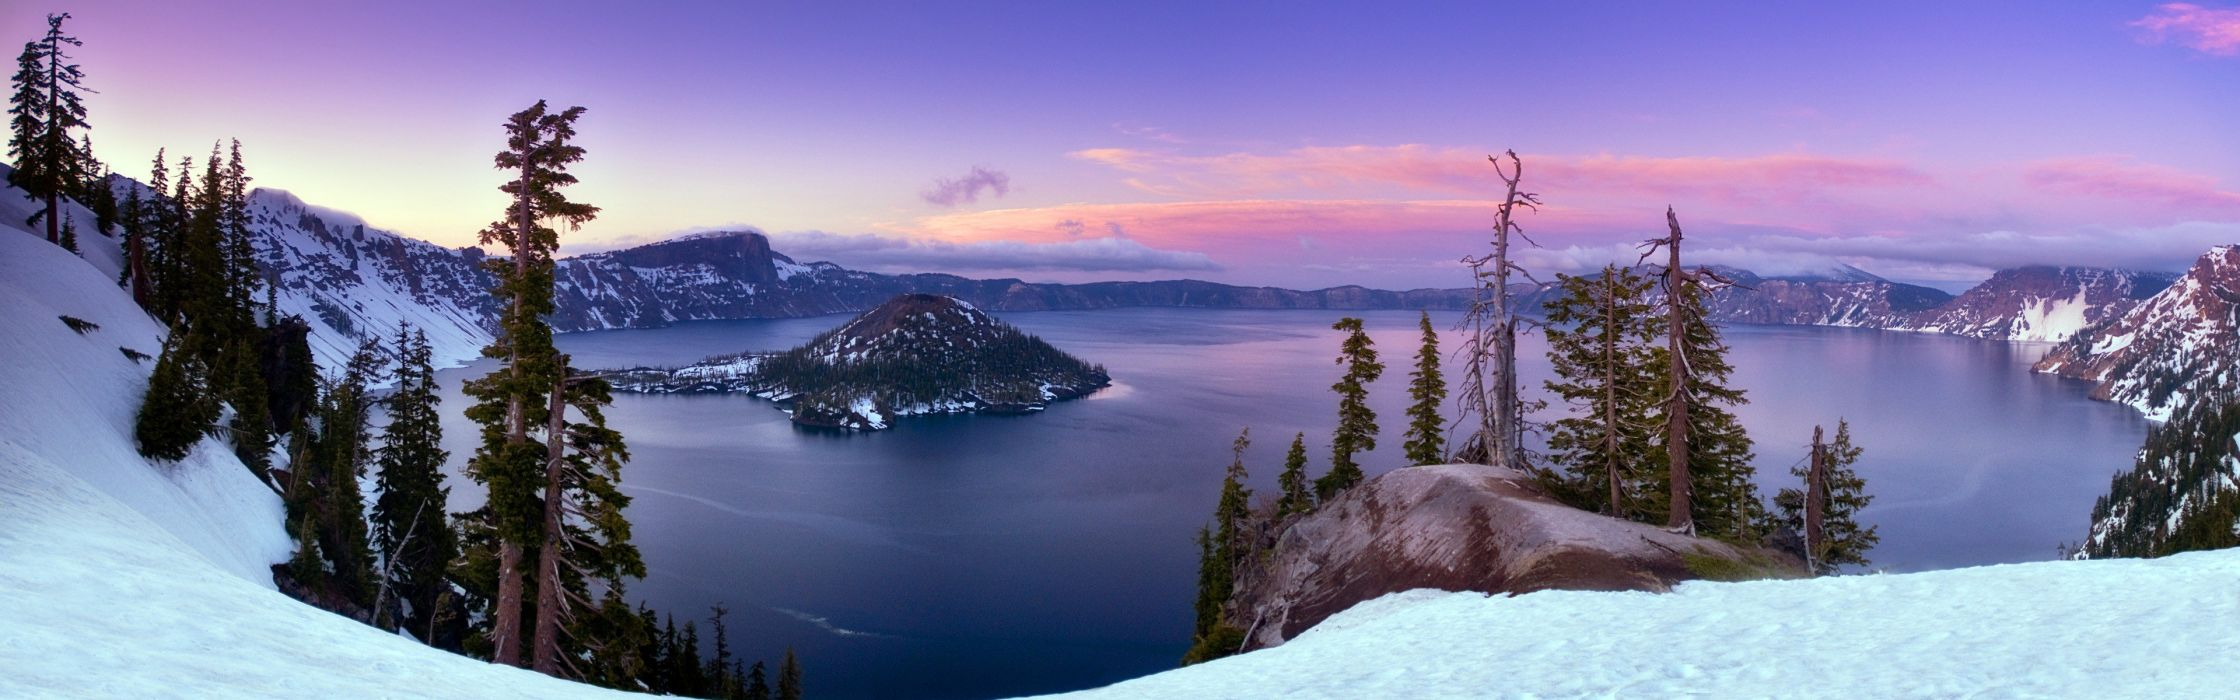 water landscapes snow trees Oregon panorama snow landscapes crater lake emerald bay wallpaper